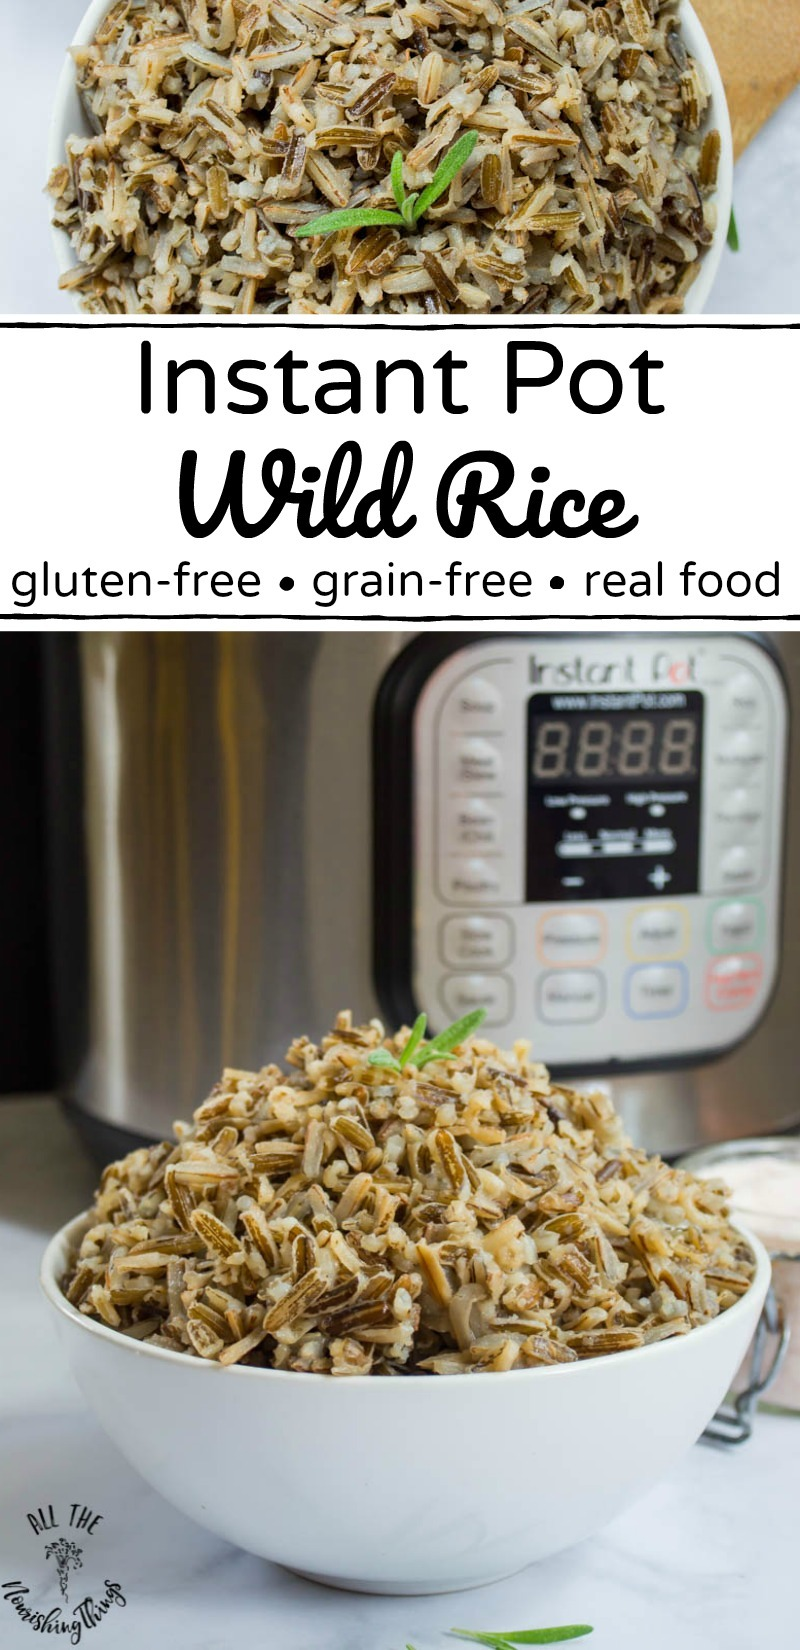 instant pot wild rice with text overlay